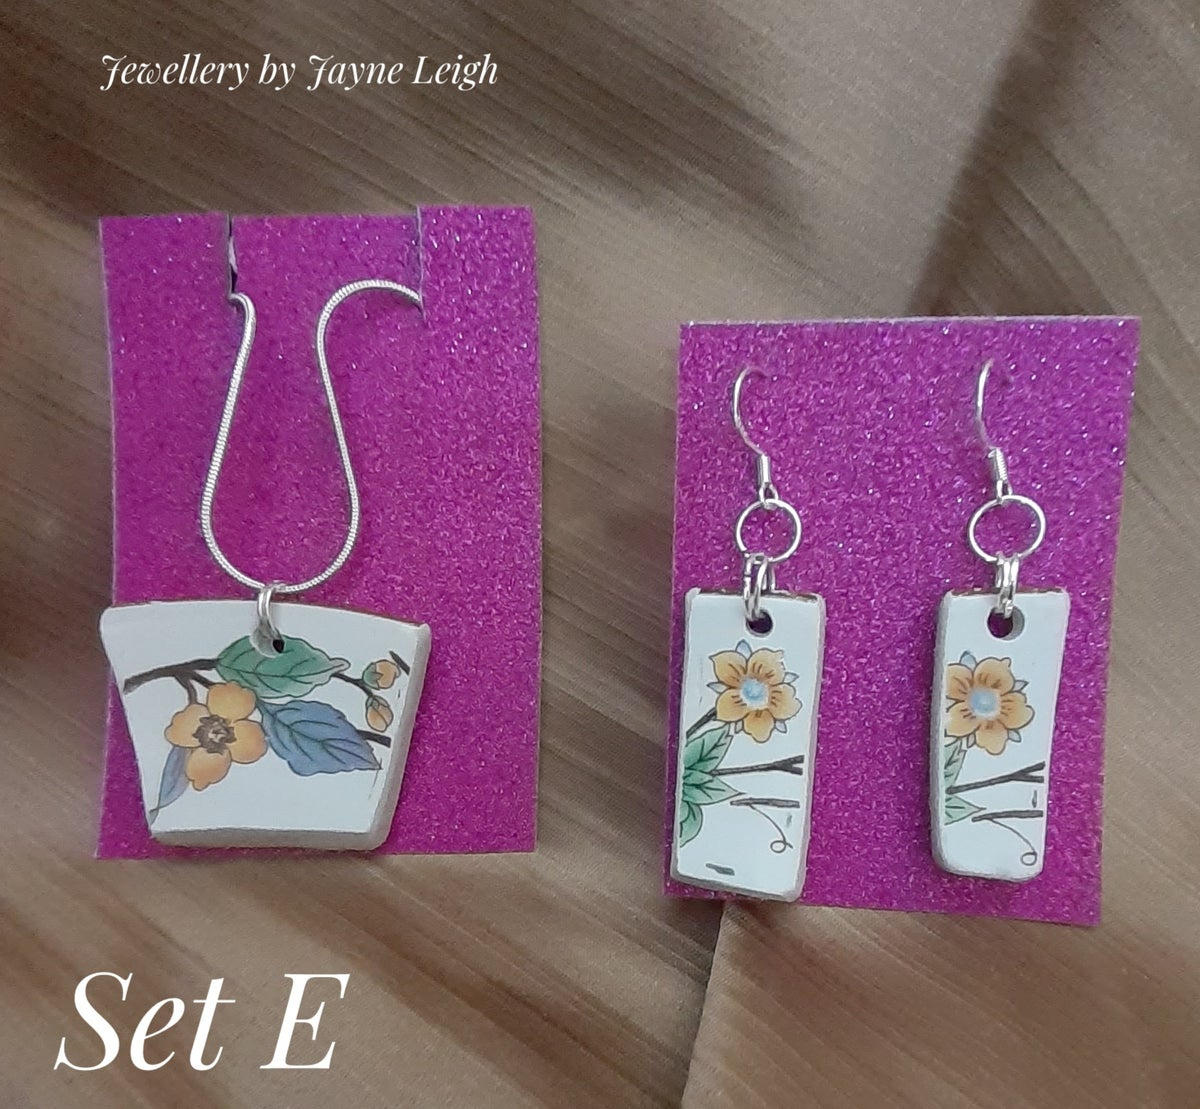 Image of Jewellery by Jayne Leigh... Page 2